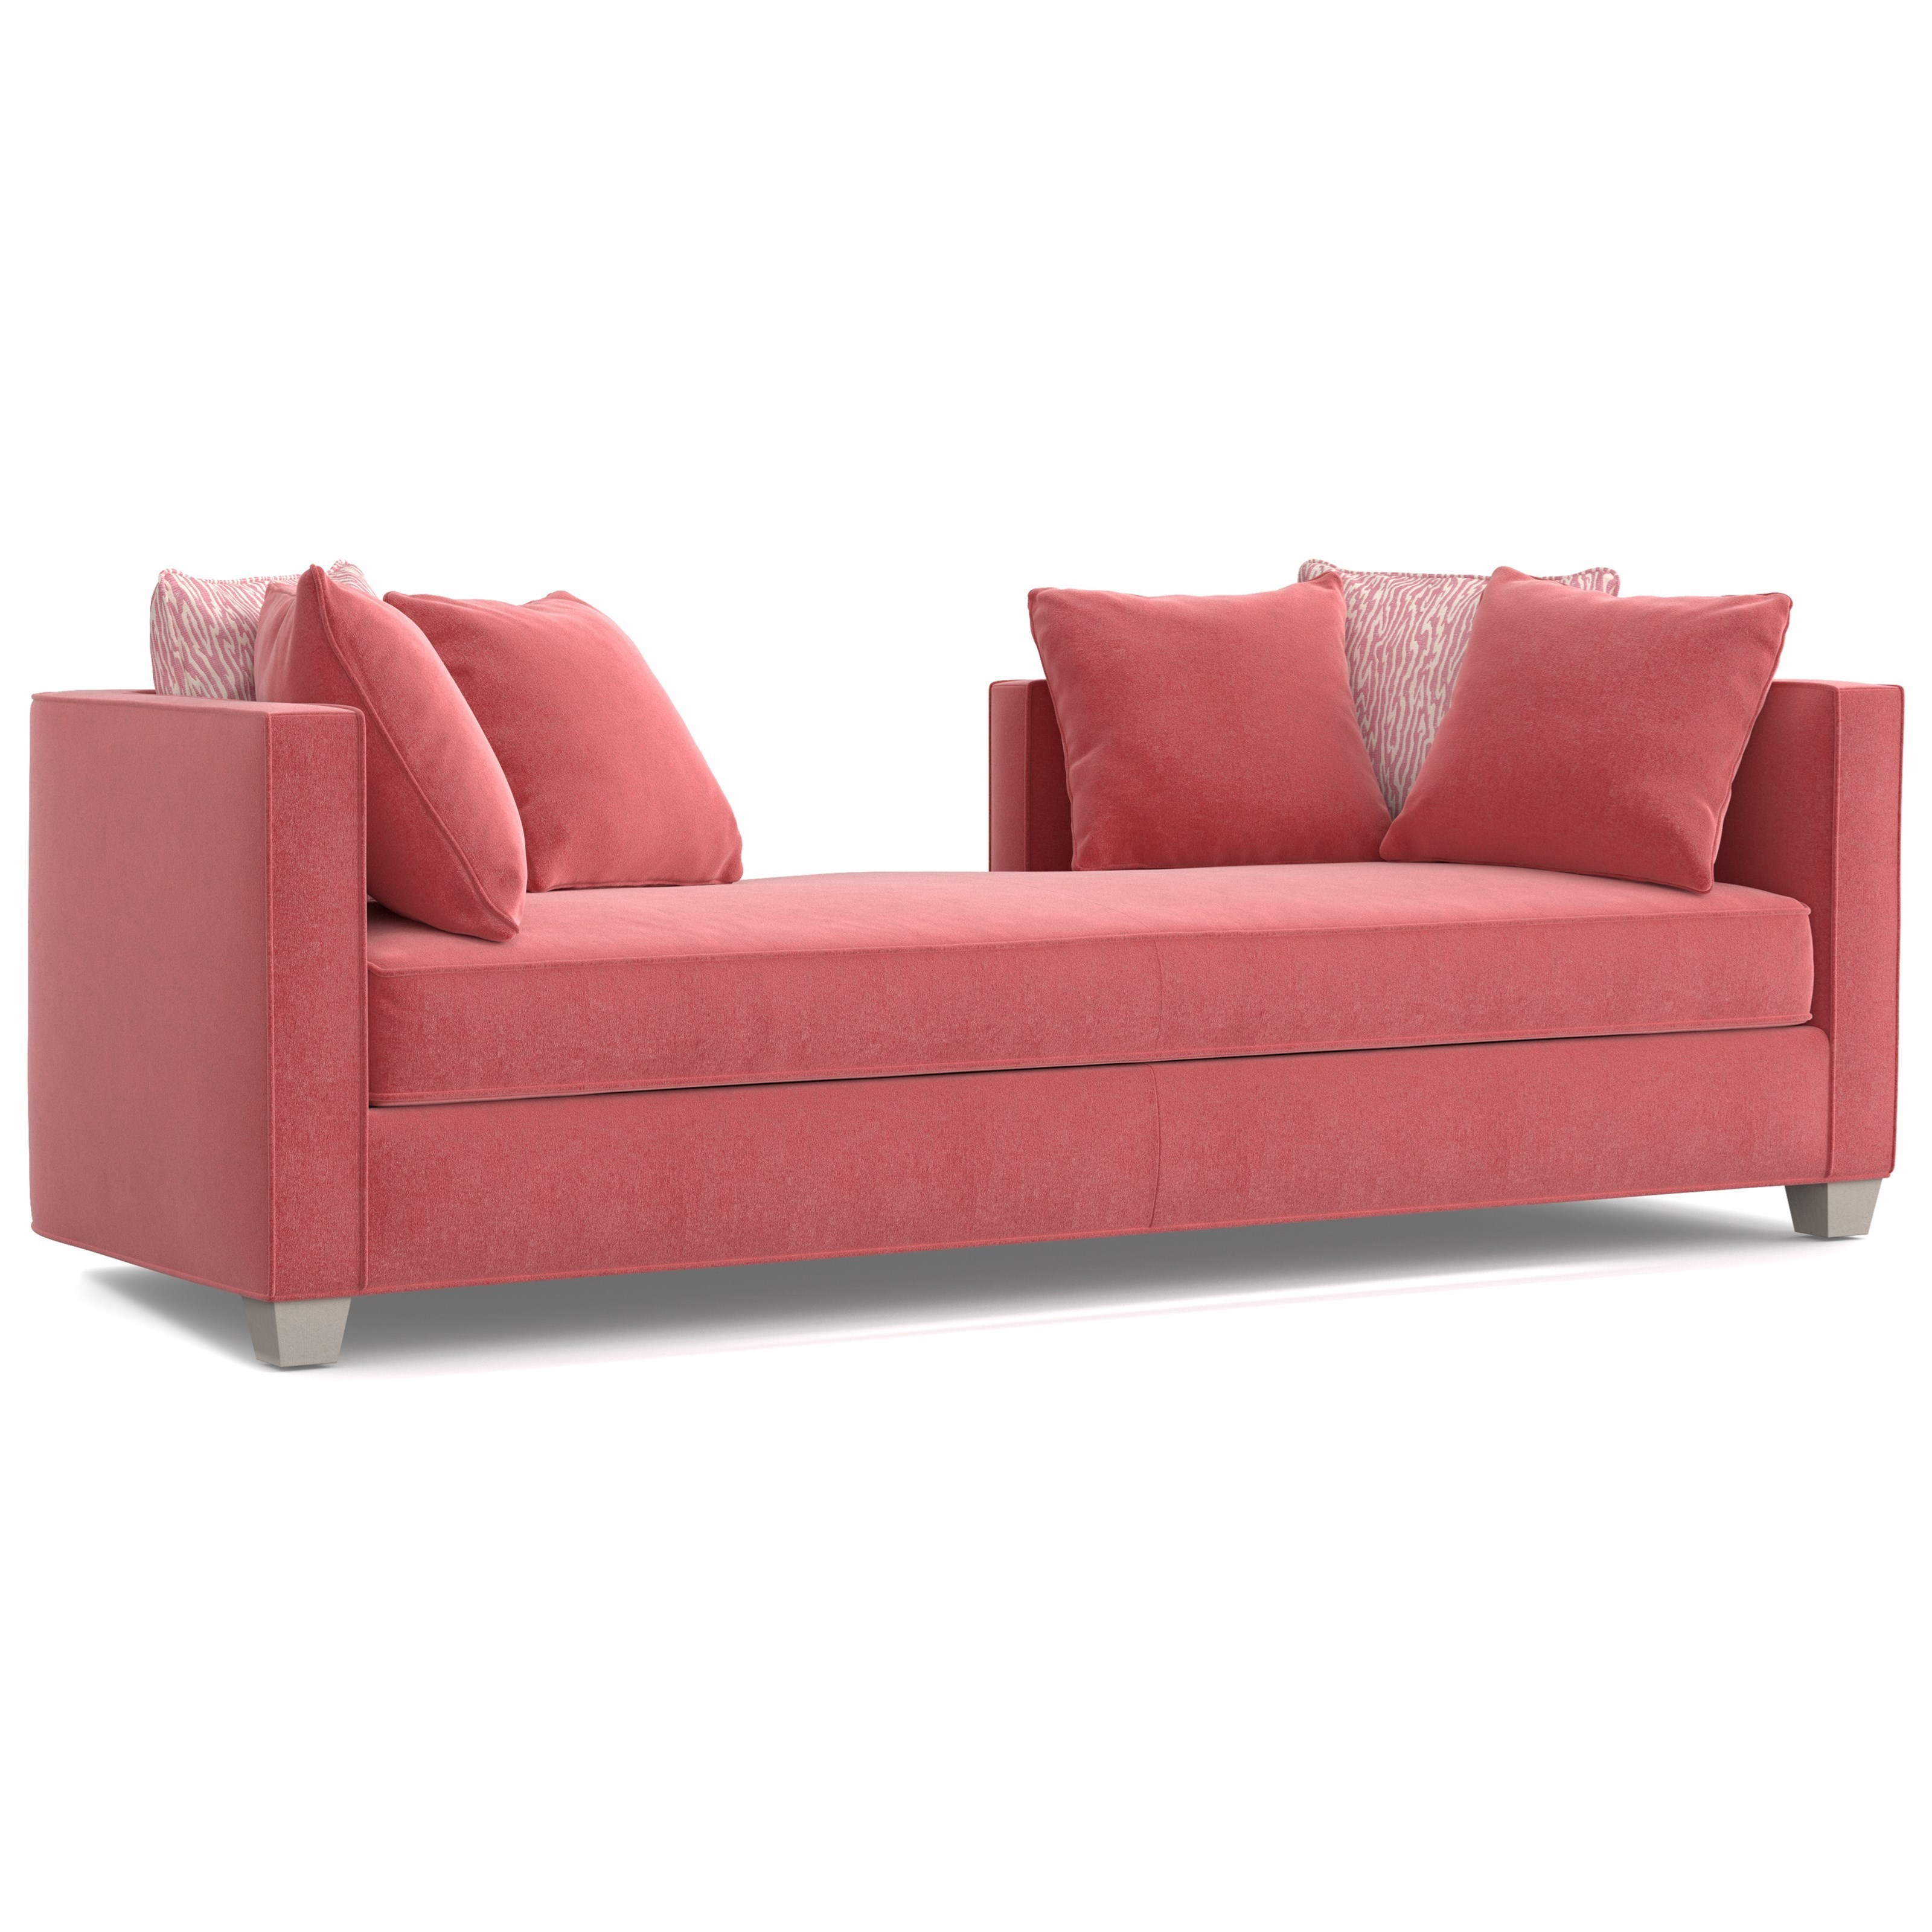 Backless Sofa Daybed Cheap Duet Daybed With Backless Sofa Daybed